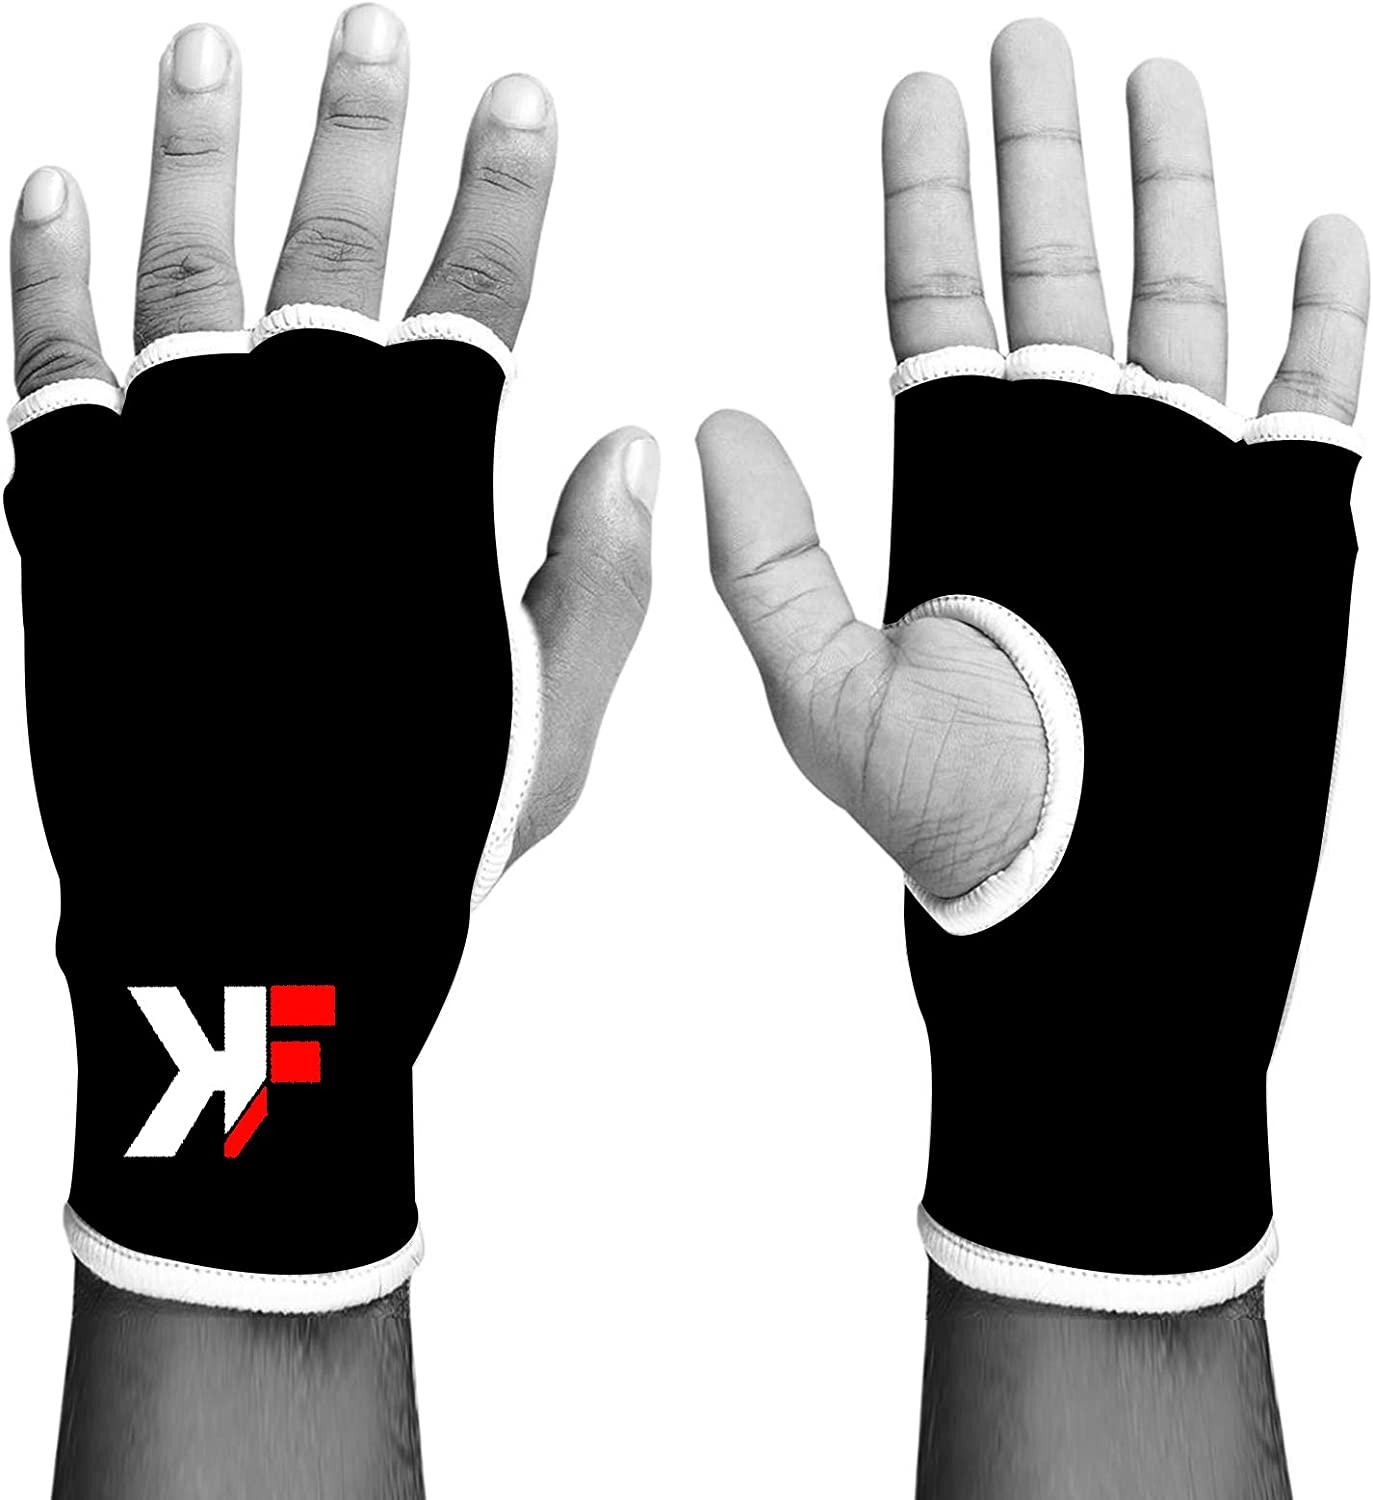 KIKFIT Elasticated Inner Gloves MMA Fist Protector Hand Support Martial Arts Muay Thai Boxing Bandages Injury Joint Pain Arthritis Tendon Mitts Black Pink Black, S//M